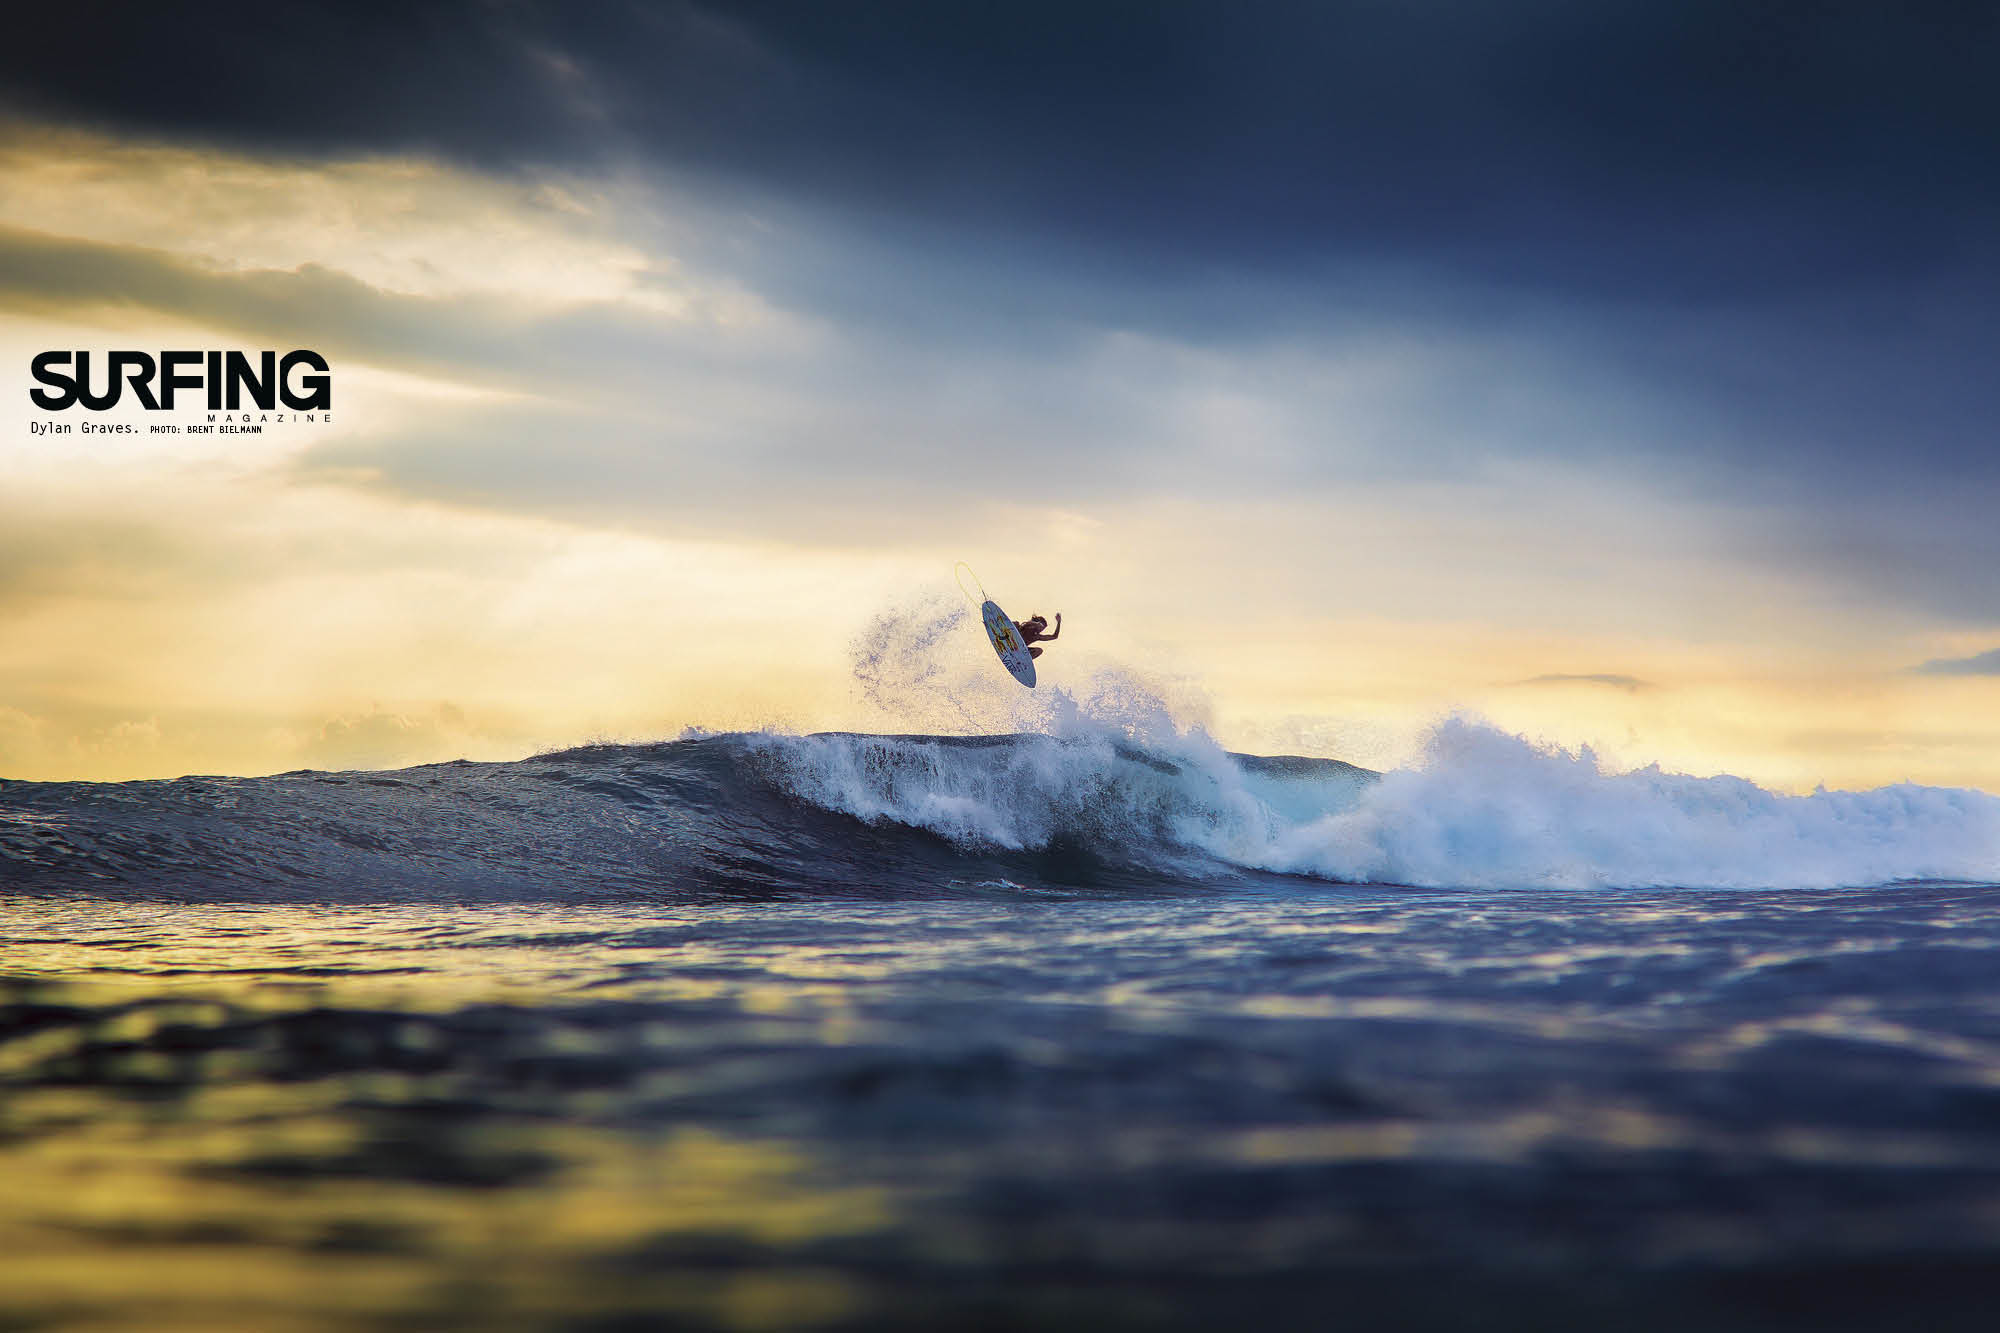 2000x1333 ... Surfing Quality HD Backgrounds |  px Pictures ...